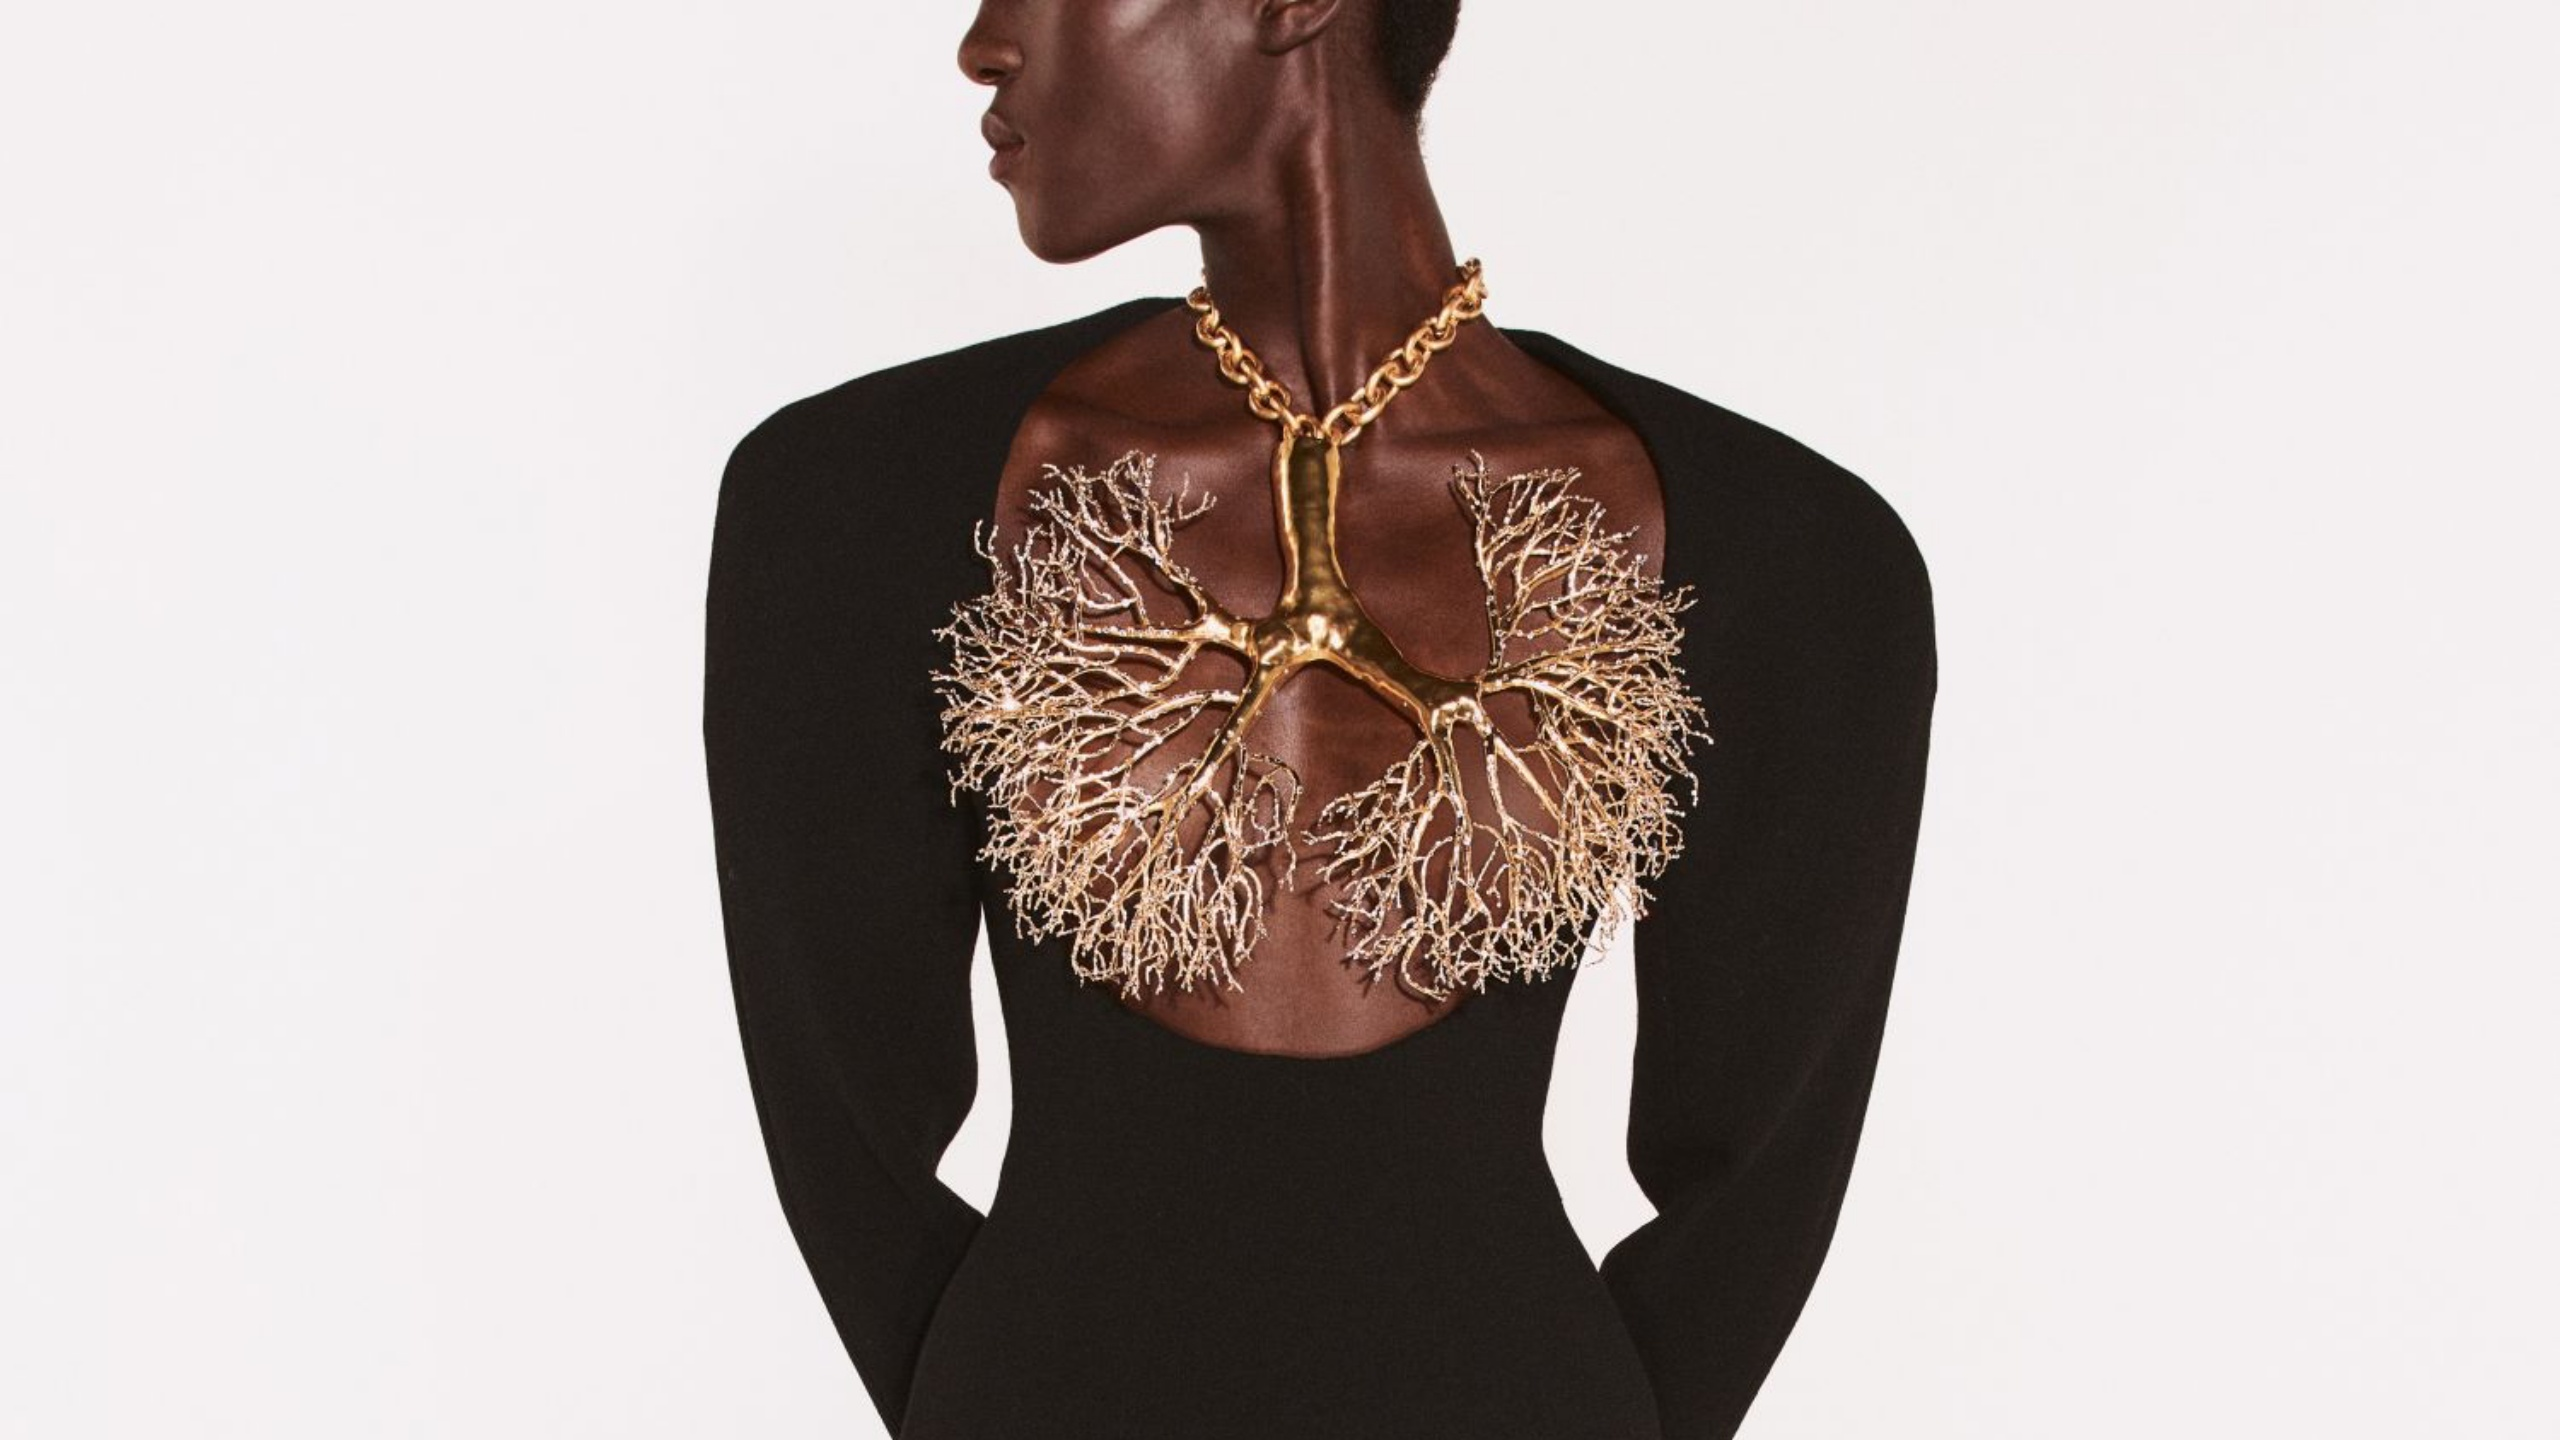 10-large-necklaces-inspired-by-bella-hadid's-viral-look